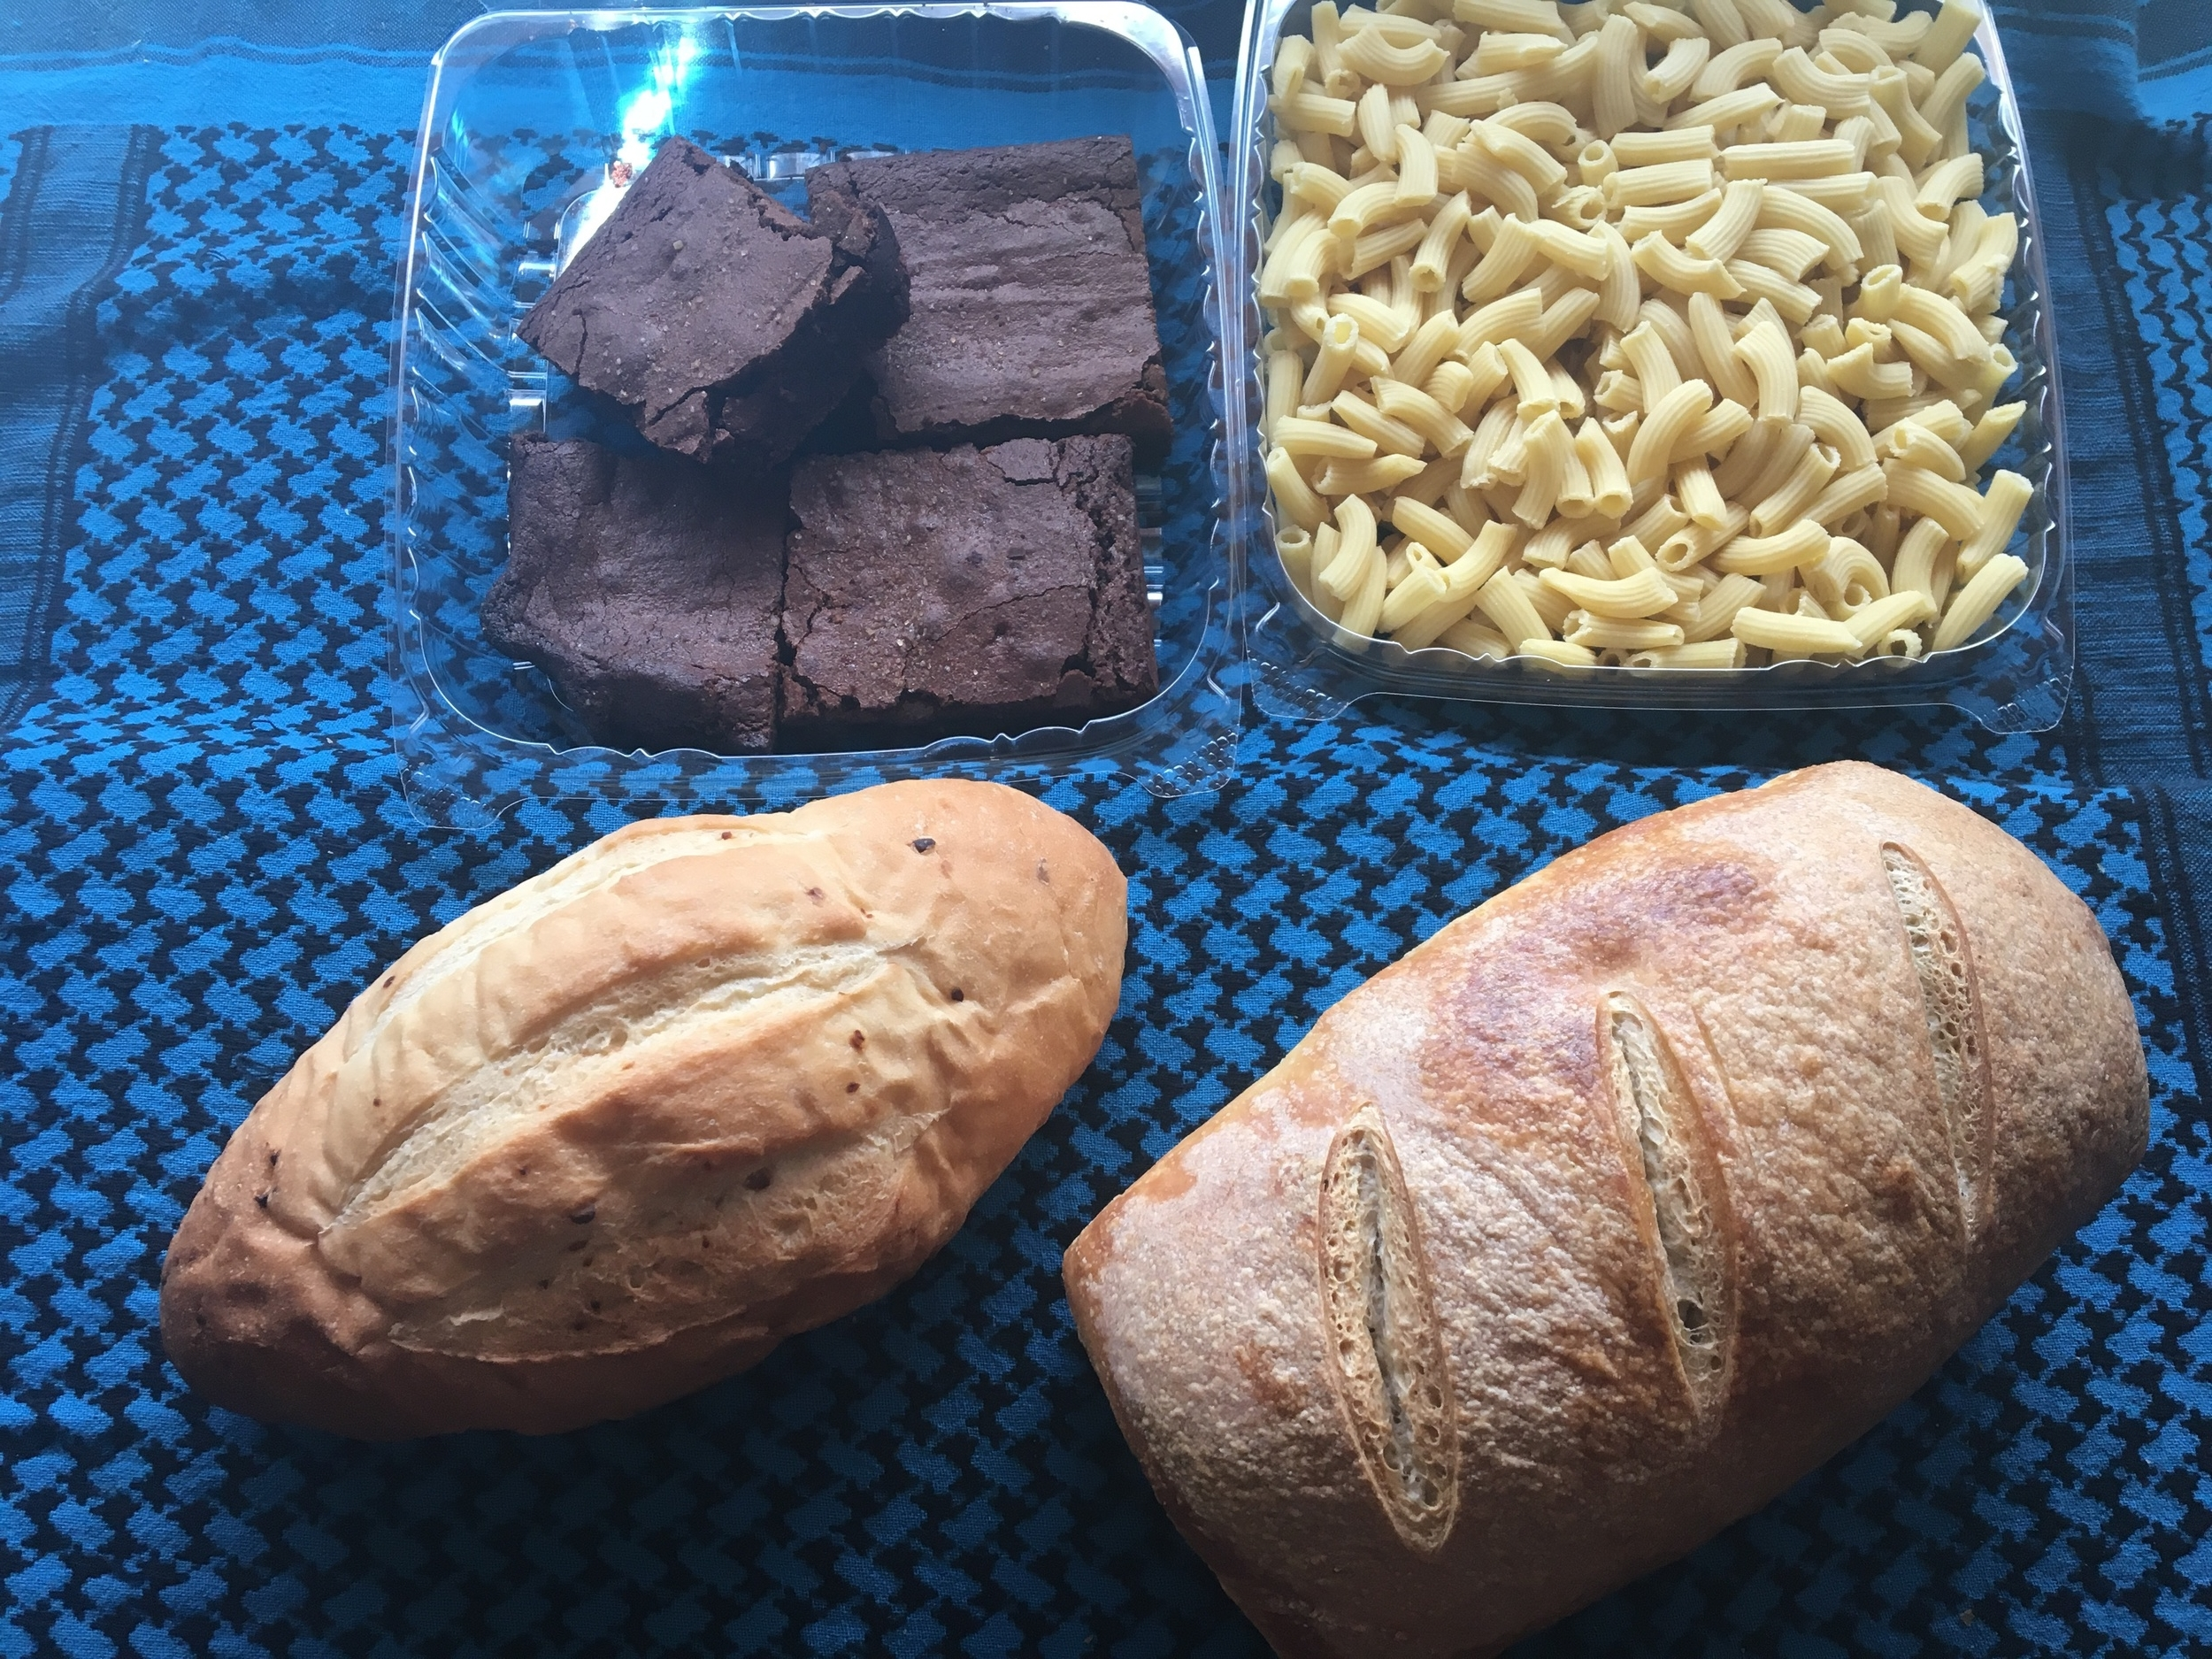 Small Bread share~ Sourdough loaf, garlic rosemary batard, penne pasta, and fudge brownies.